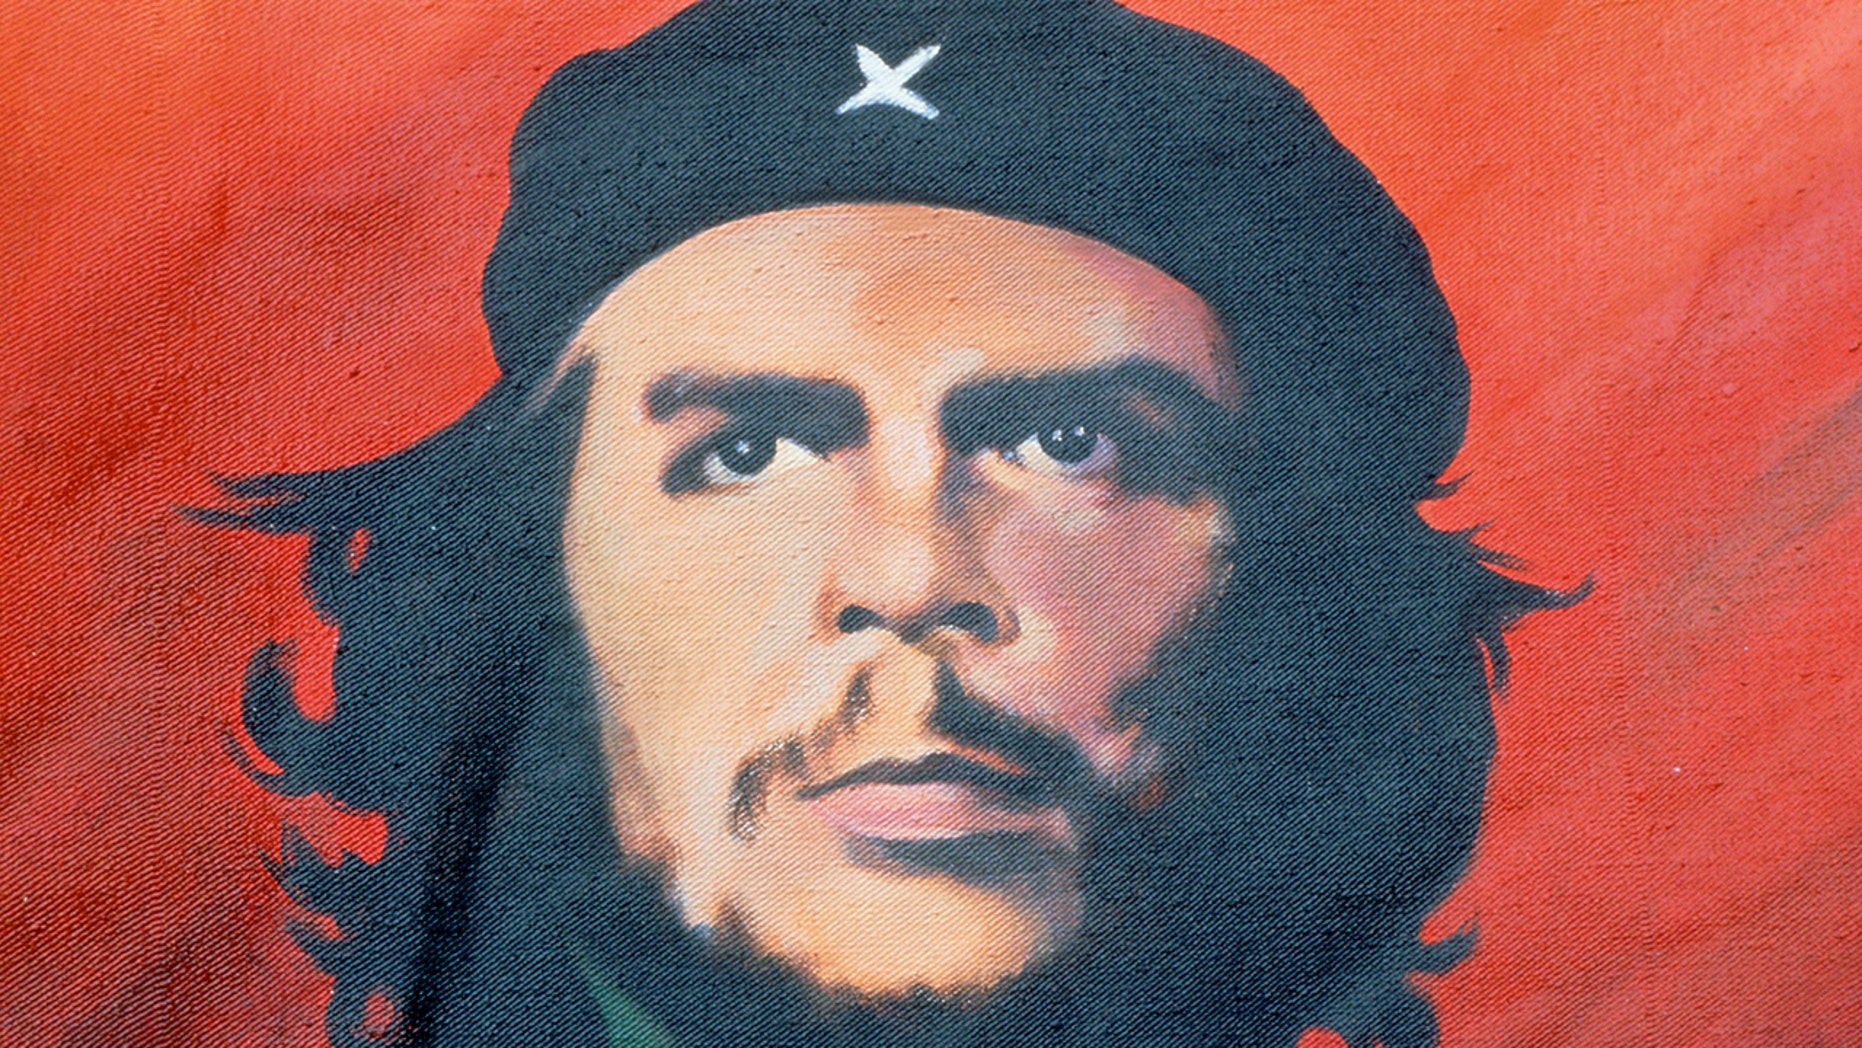 Cuban revolutionary Che Guevara is still idolized around the world.But his fans might not be aware of just what their idol did and said.